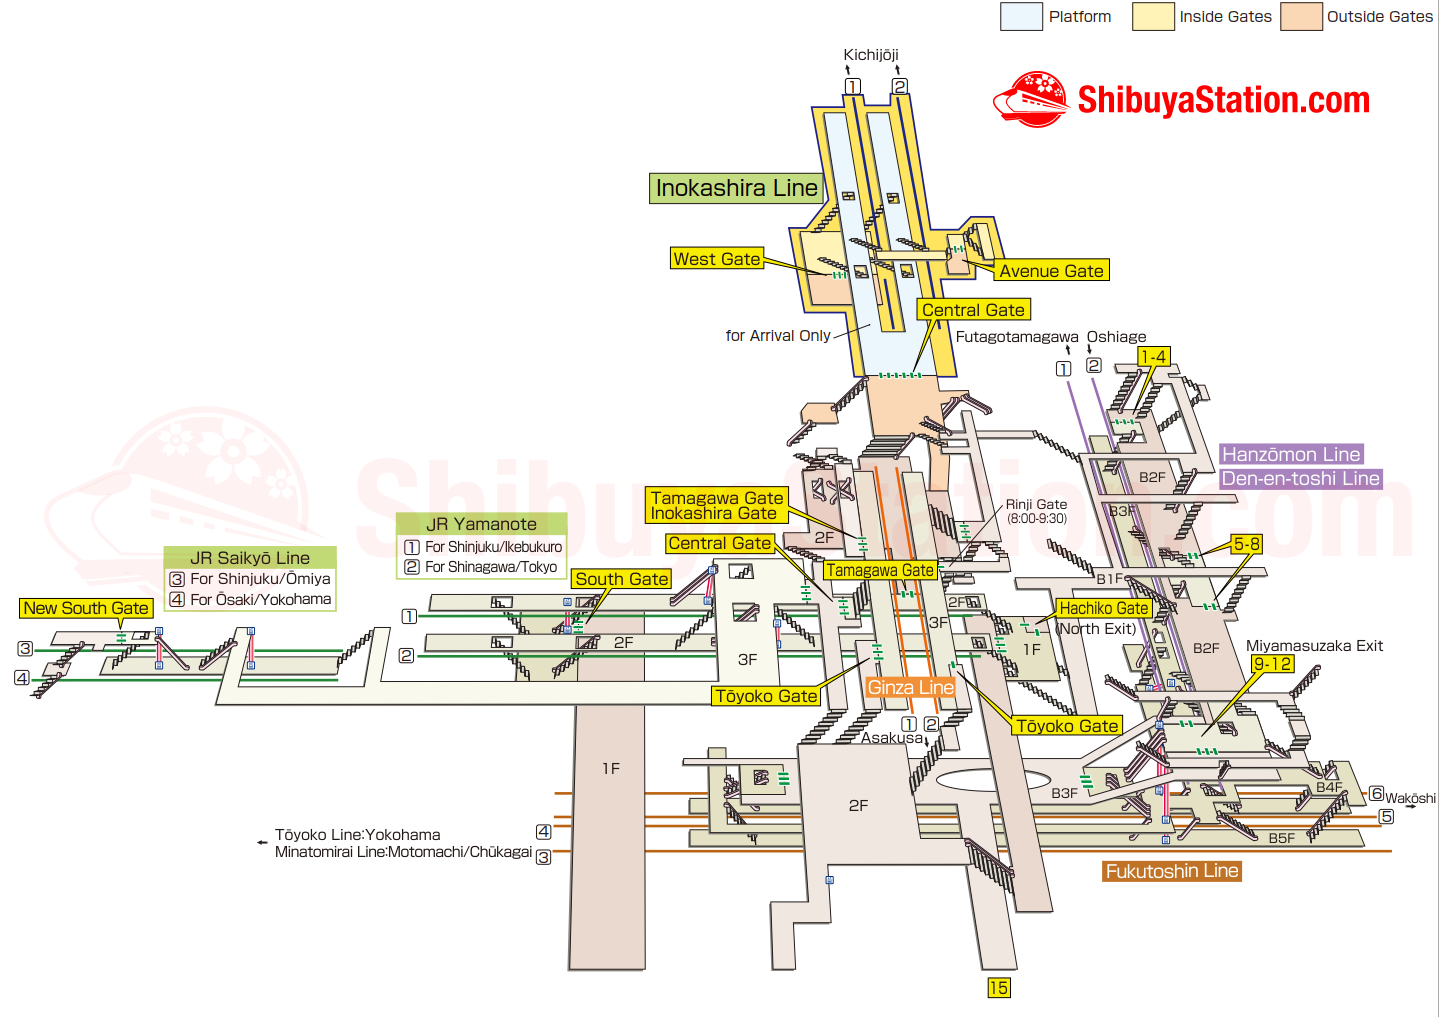 Shibuya Station Map